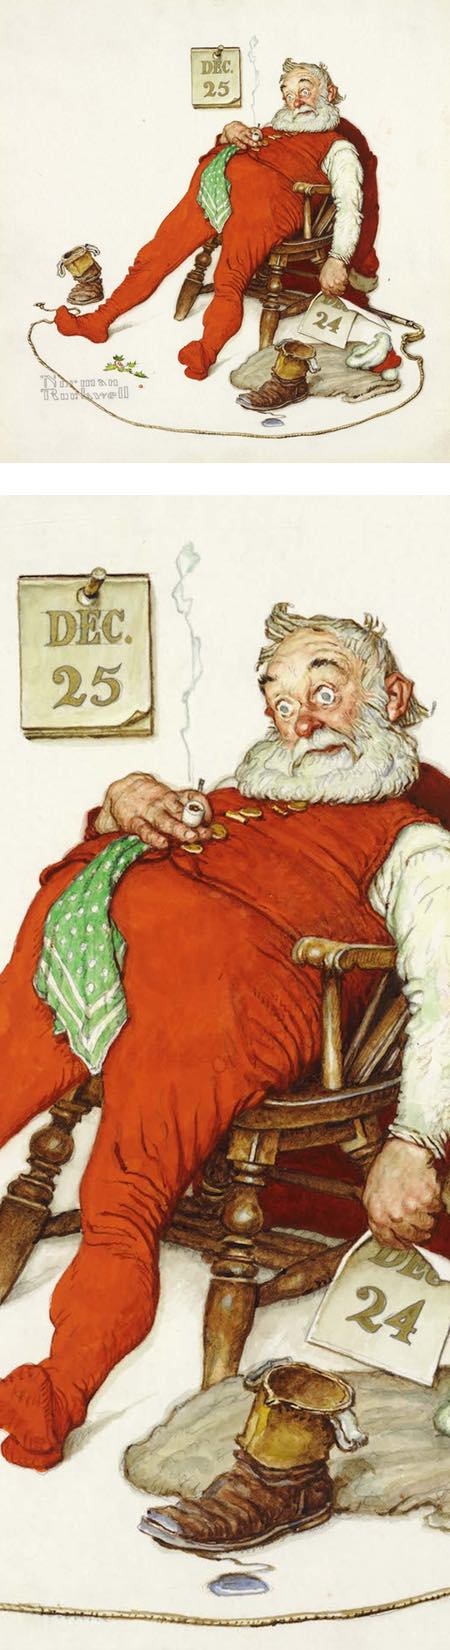 And to All a Good Night, Norman Rockwell